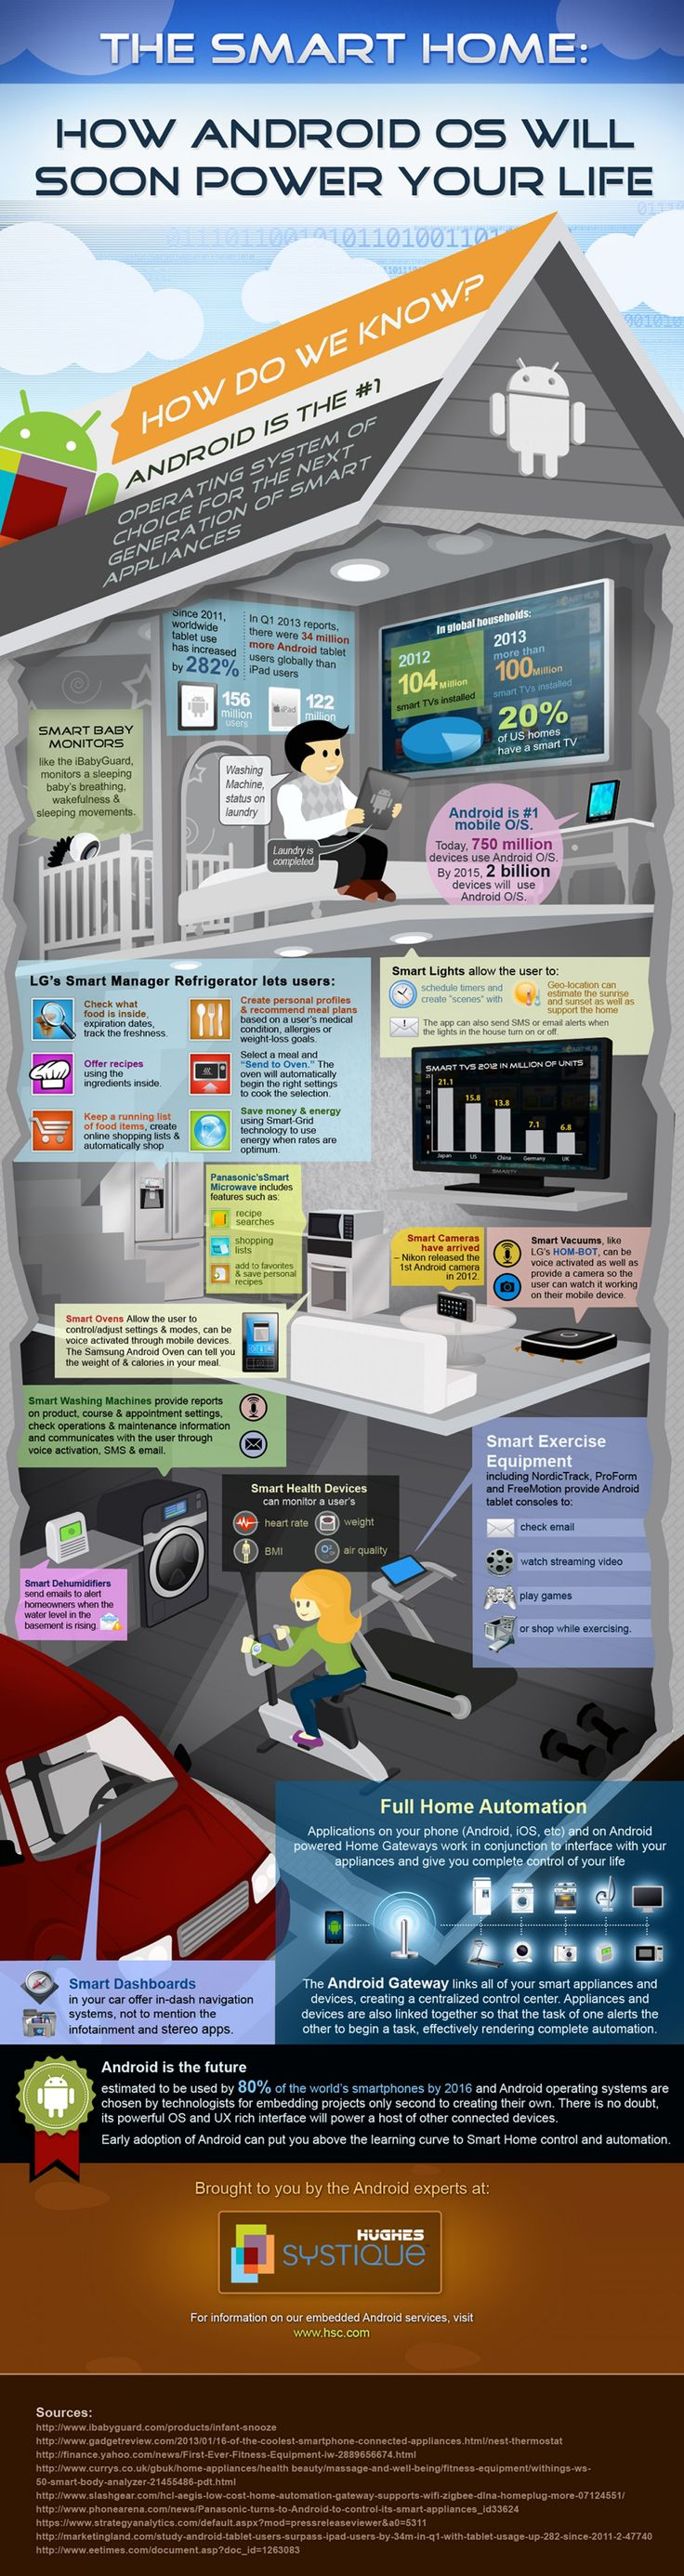 The Smart Home: How Android OS Will Soon Power Your Life #Infographic #Technology #Android #SmartHome